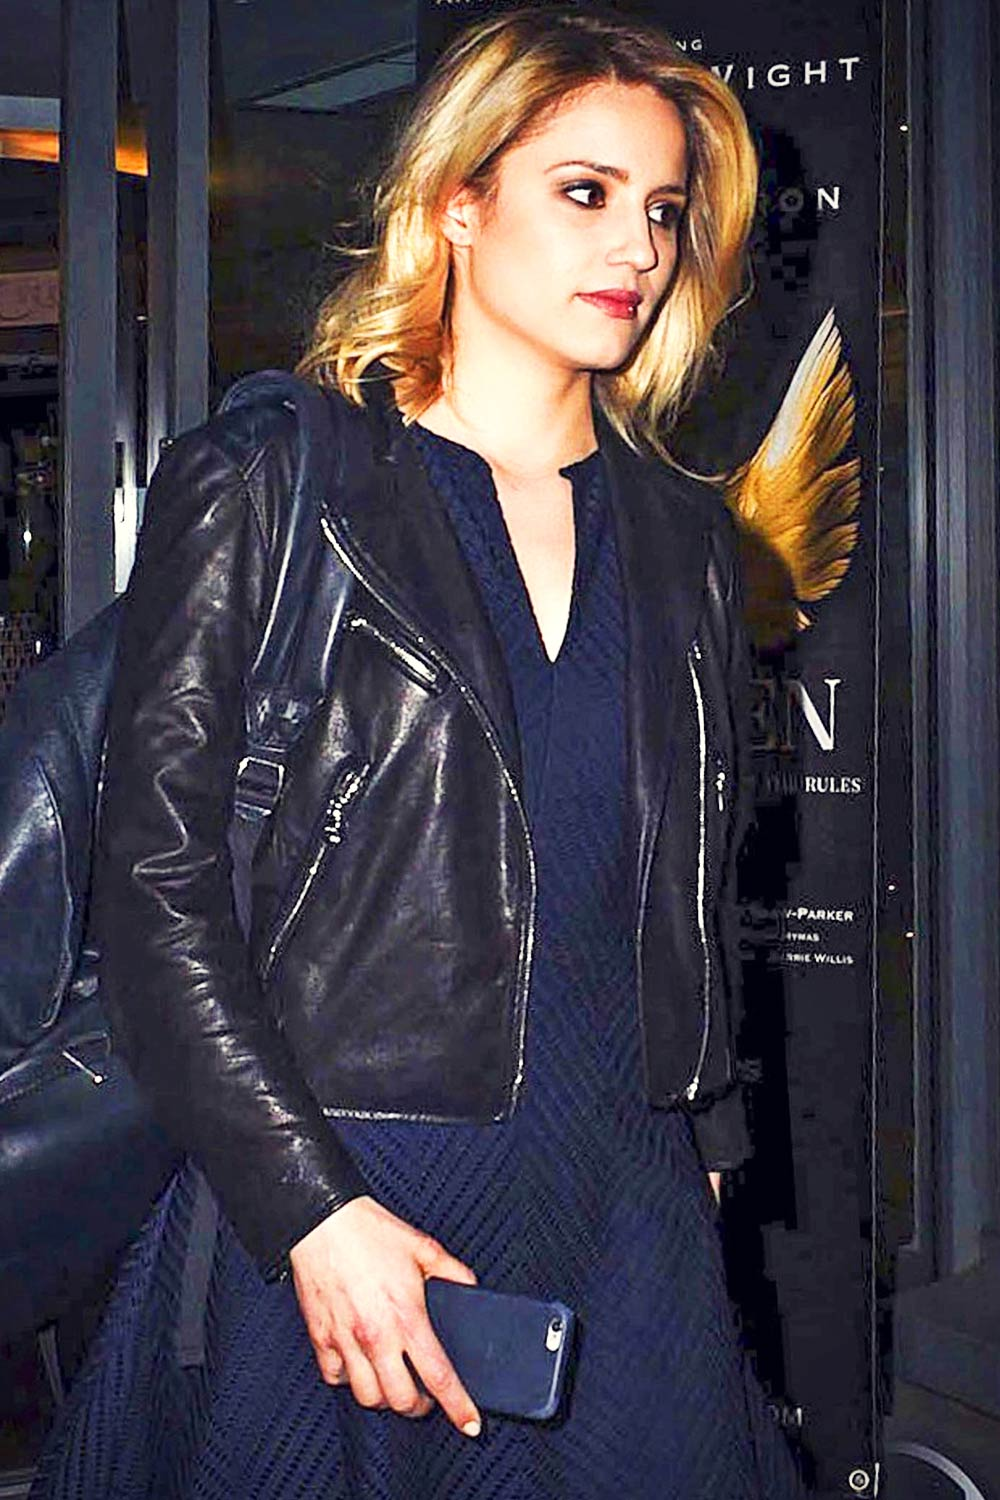 Dianna Agron leaving the St. James Theatre